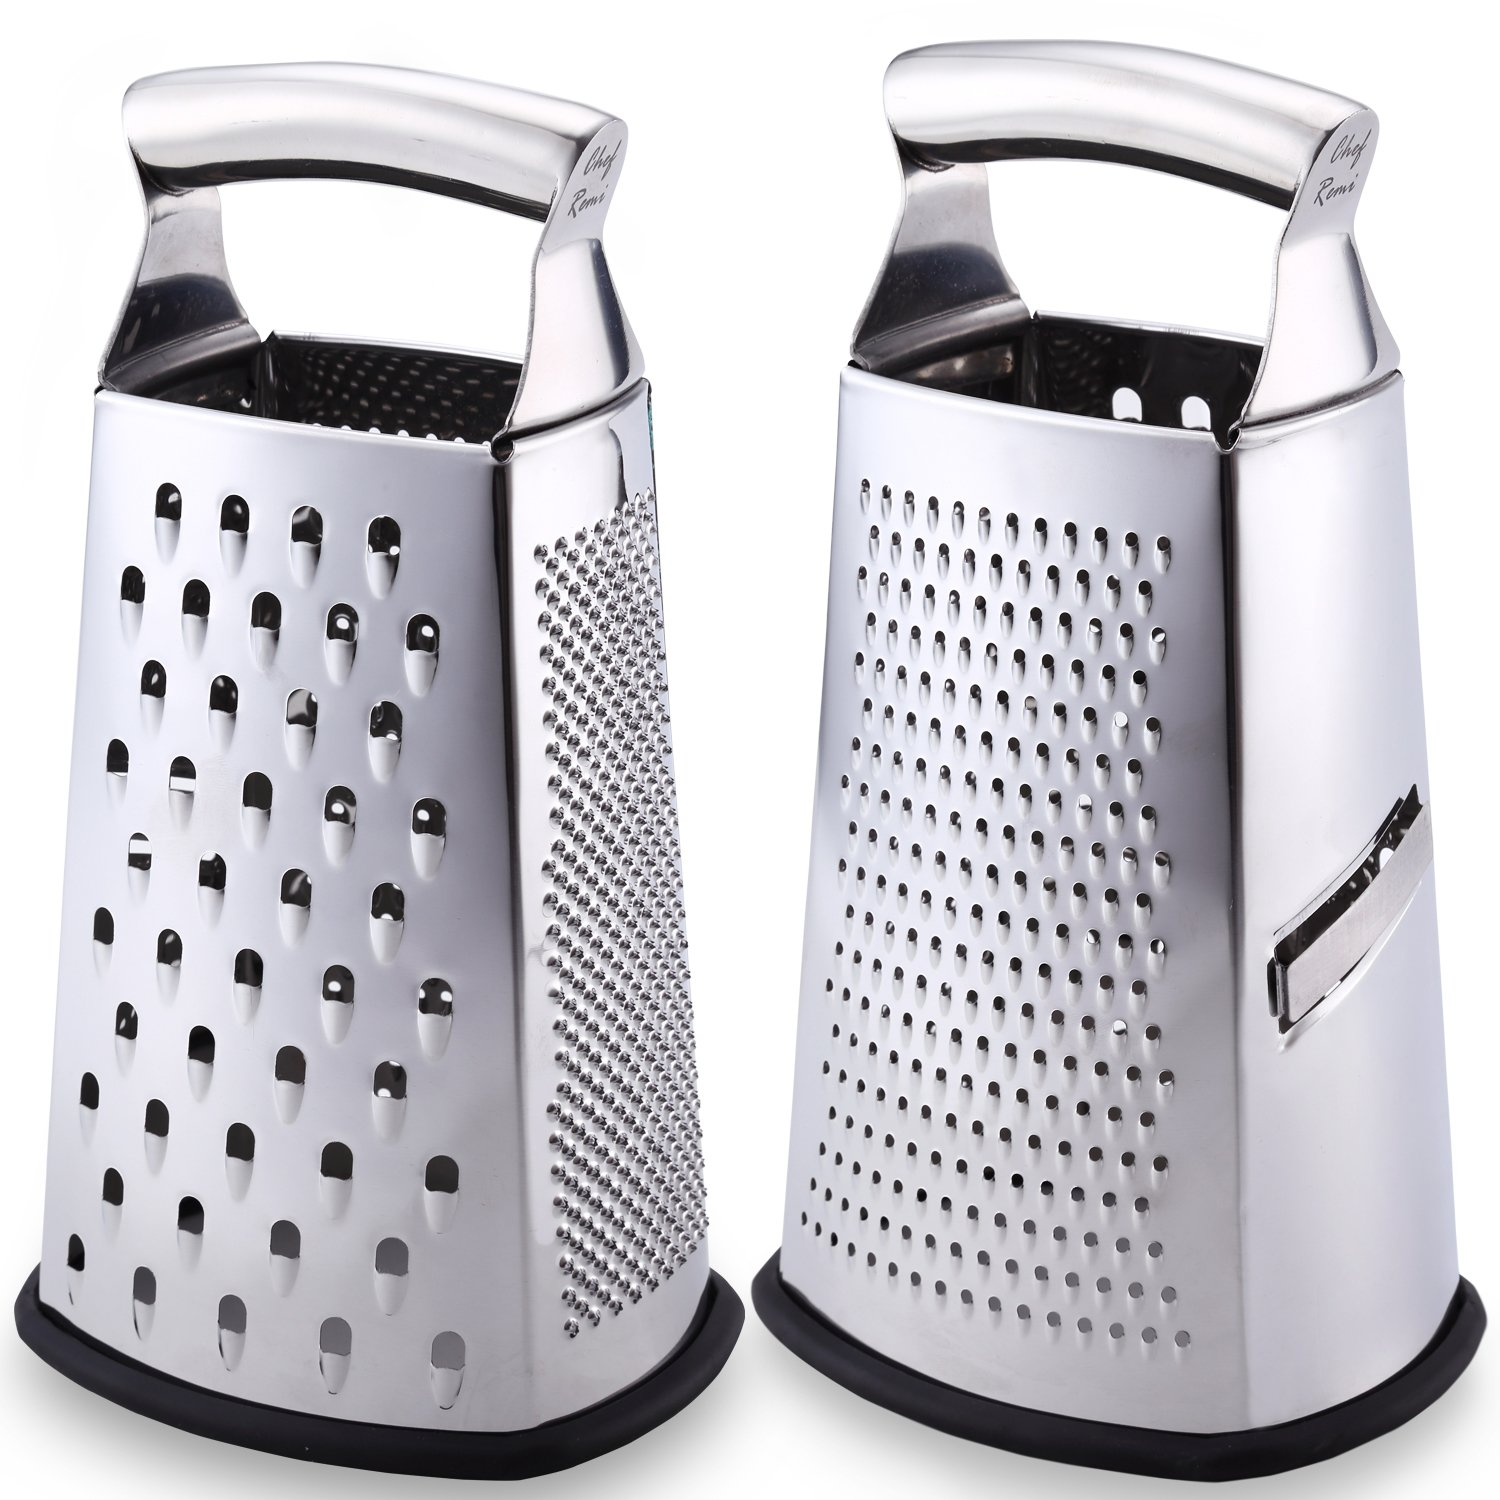 Latest 4-Sided Box Grater - Rated No.1 Best Stainless Steel Food Shredder for Cheese, Ginger, Lemon, Orange, Nuts & Vegetables Like Cabbage, Carrot and Potato Chef Remi